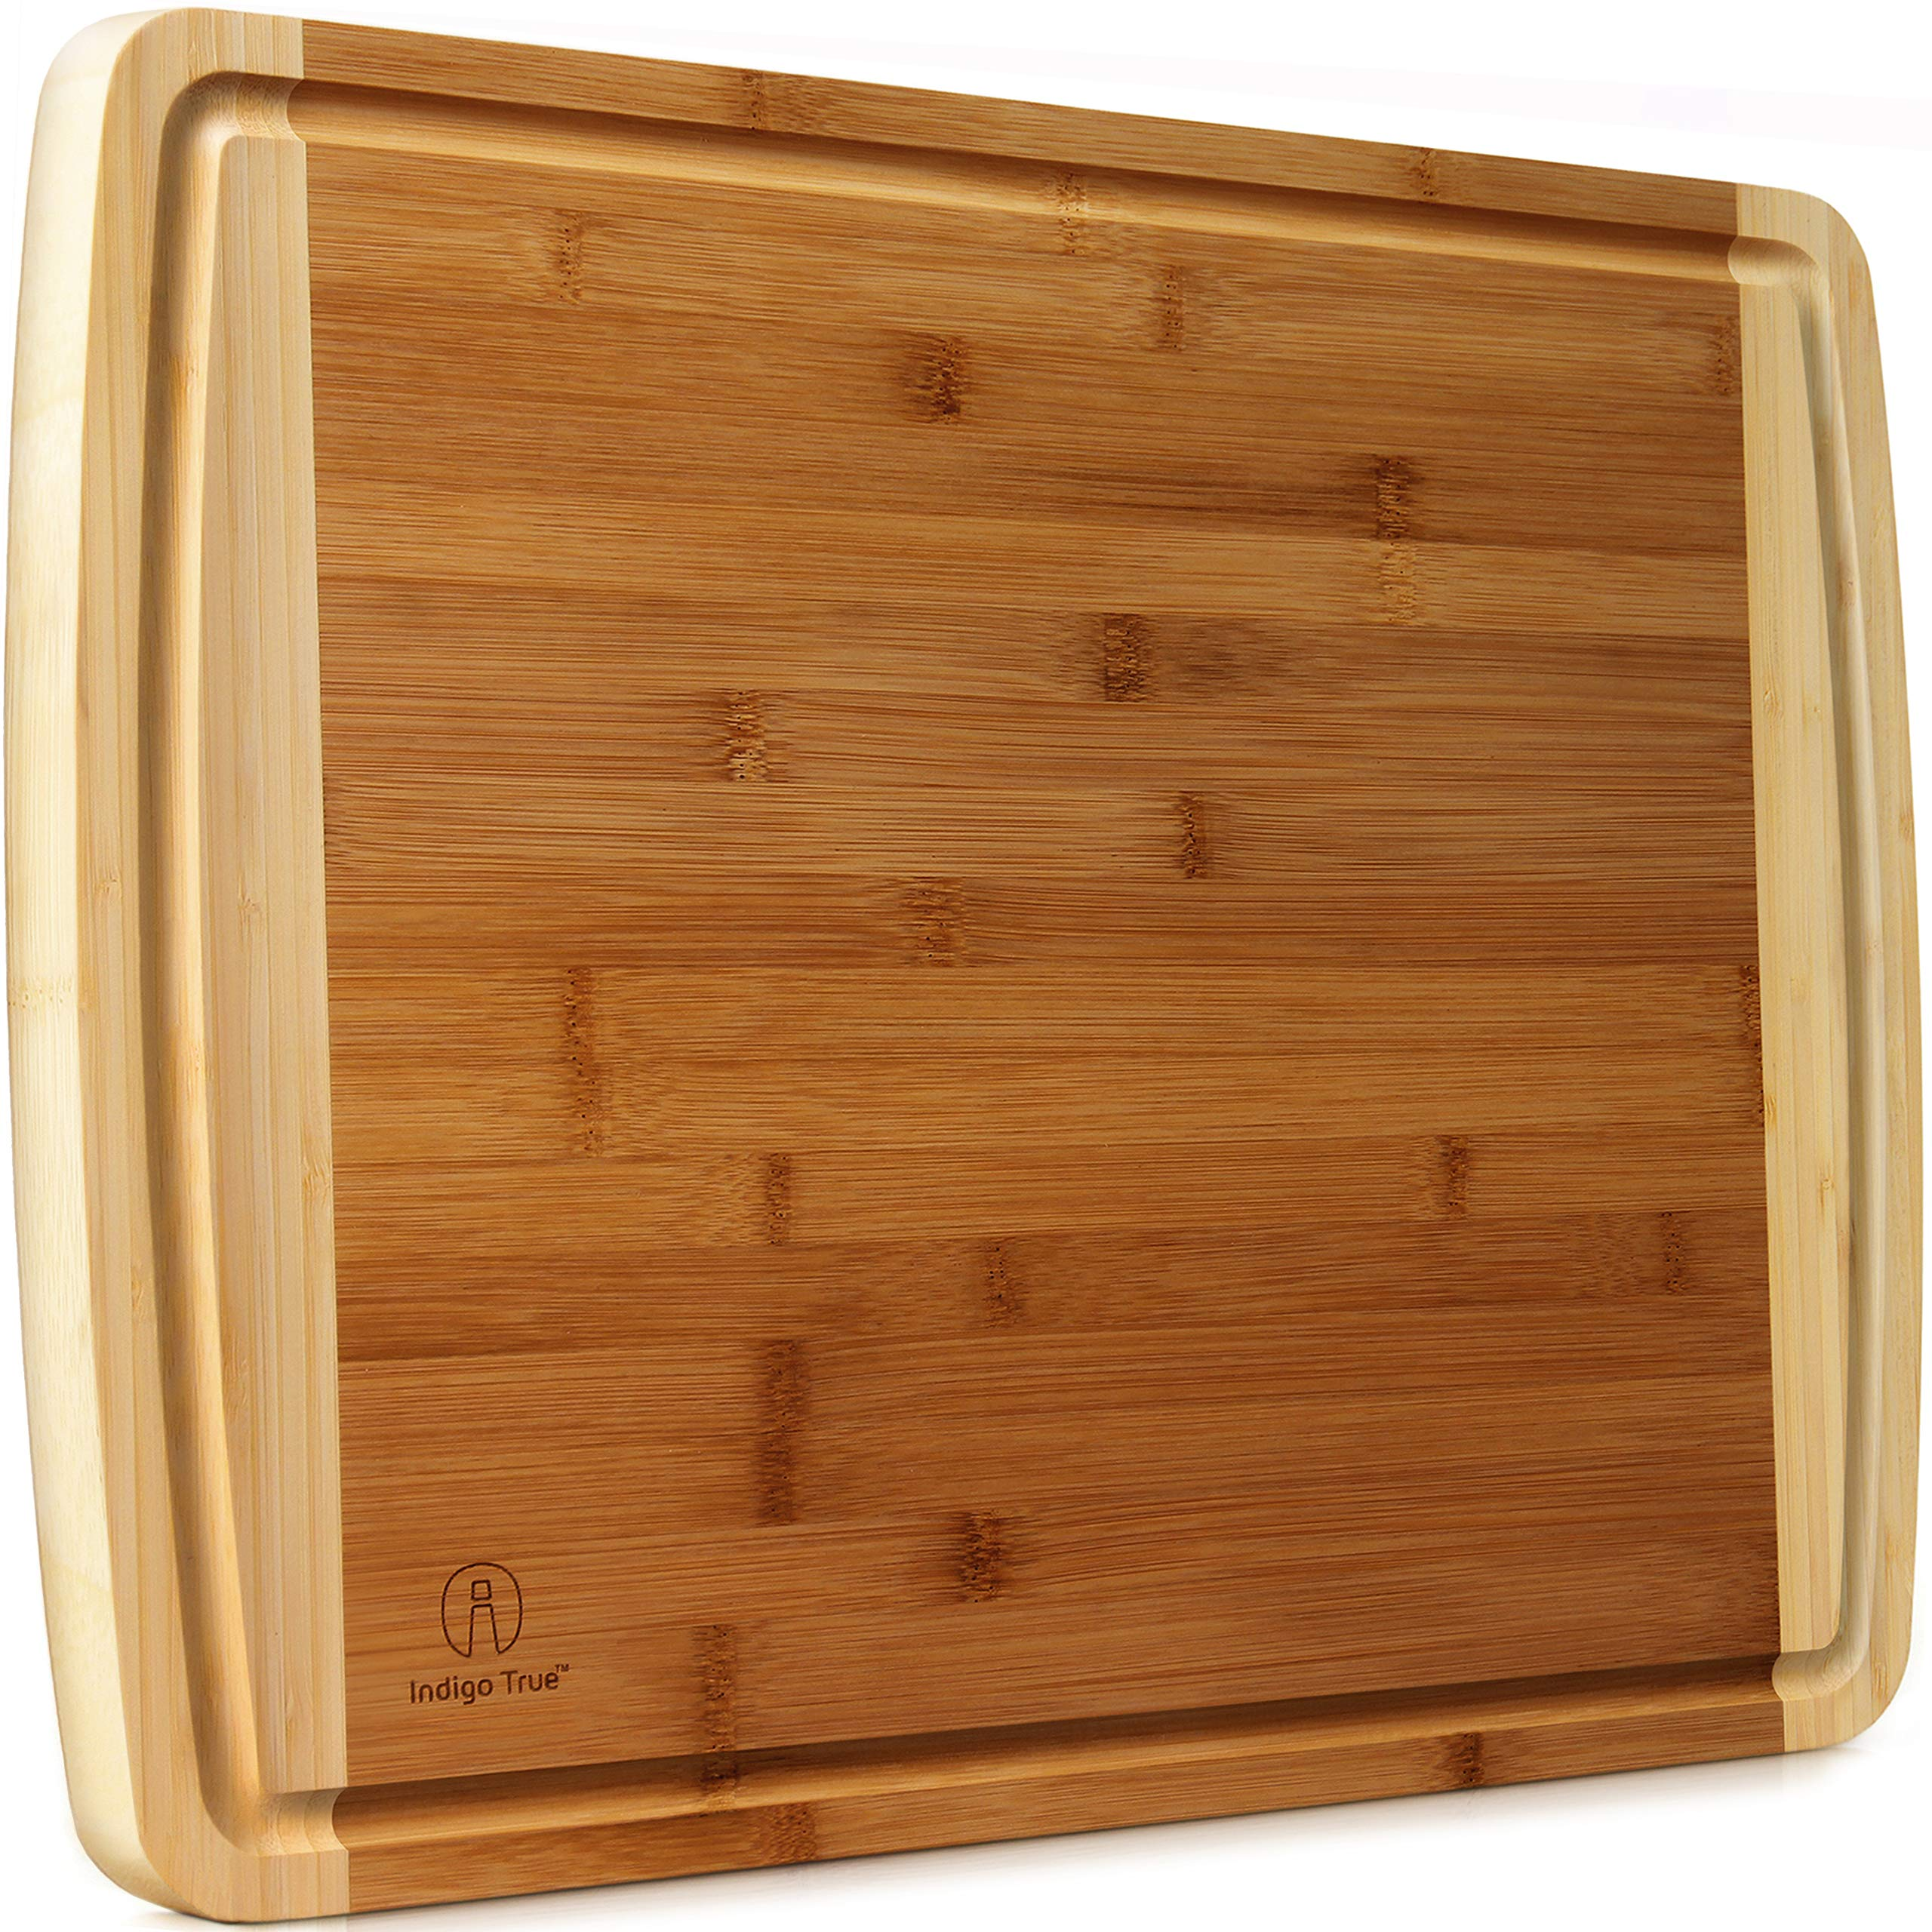 Extra Large Bamboo Cutting Board for Kitchen with Juice Groove - 17.5 x 13.5 x 0.75 inch by Indigo True